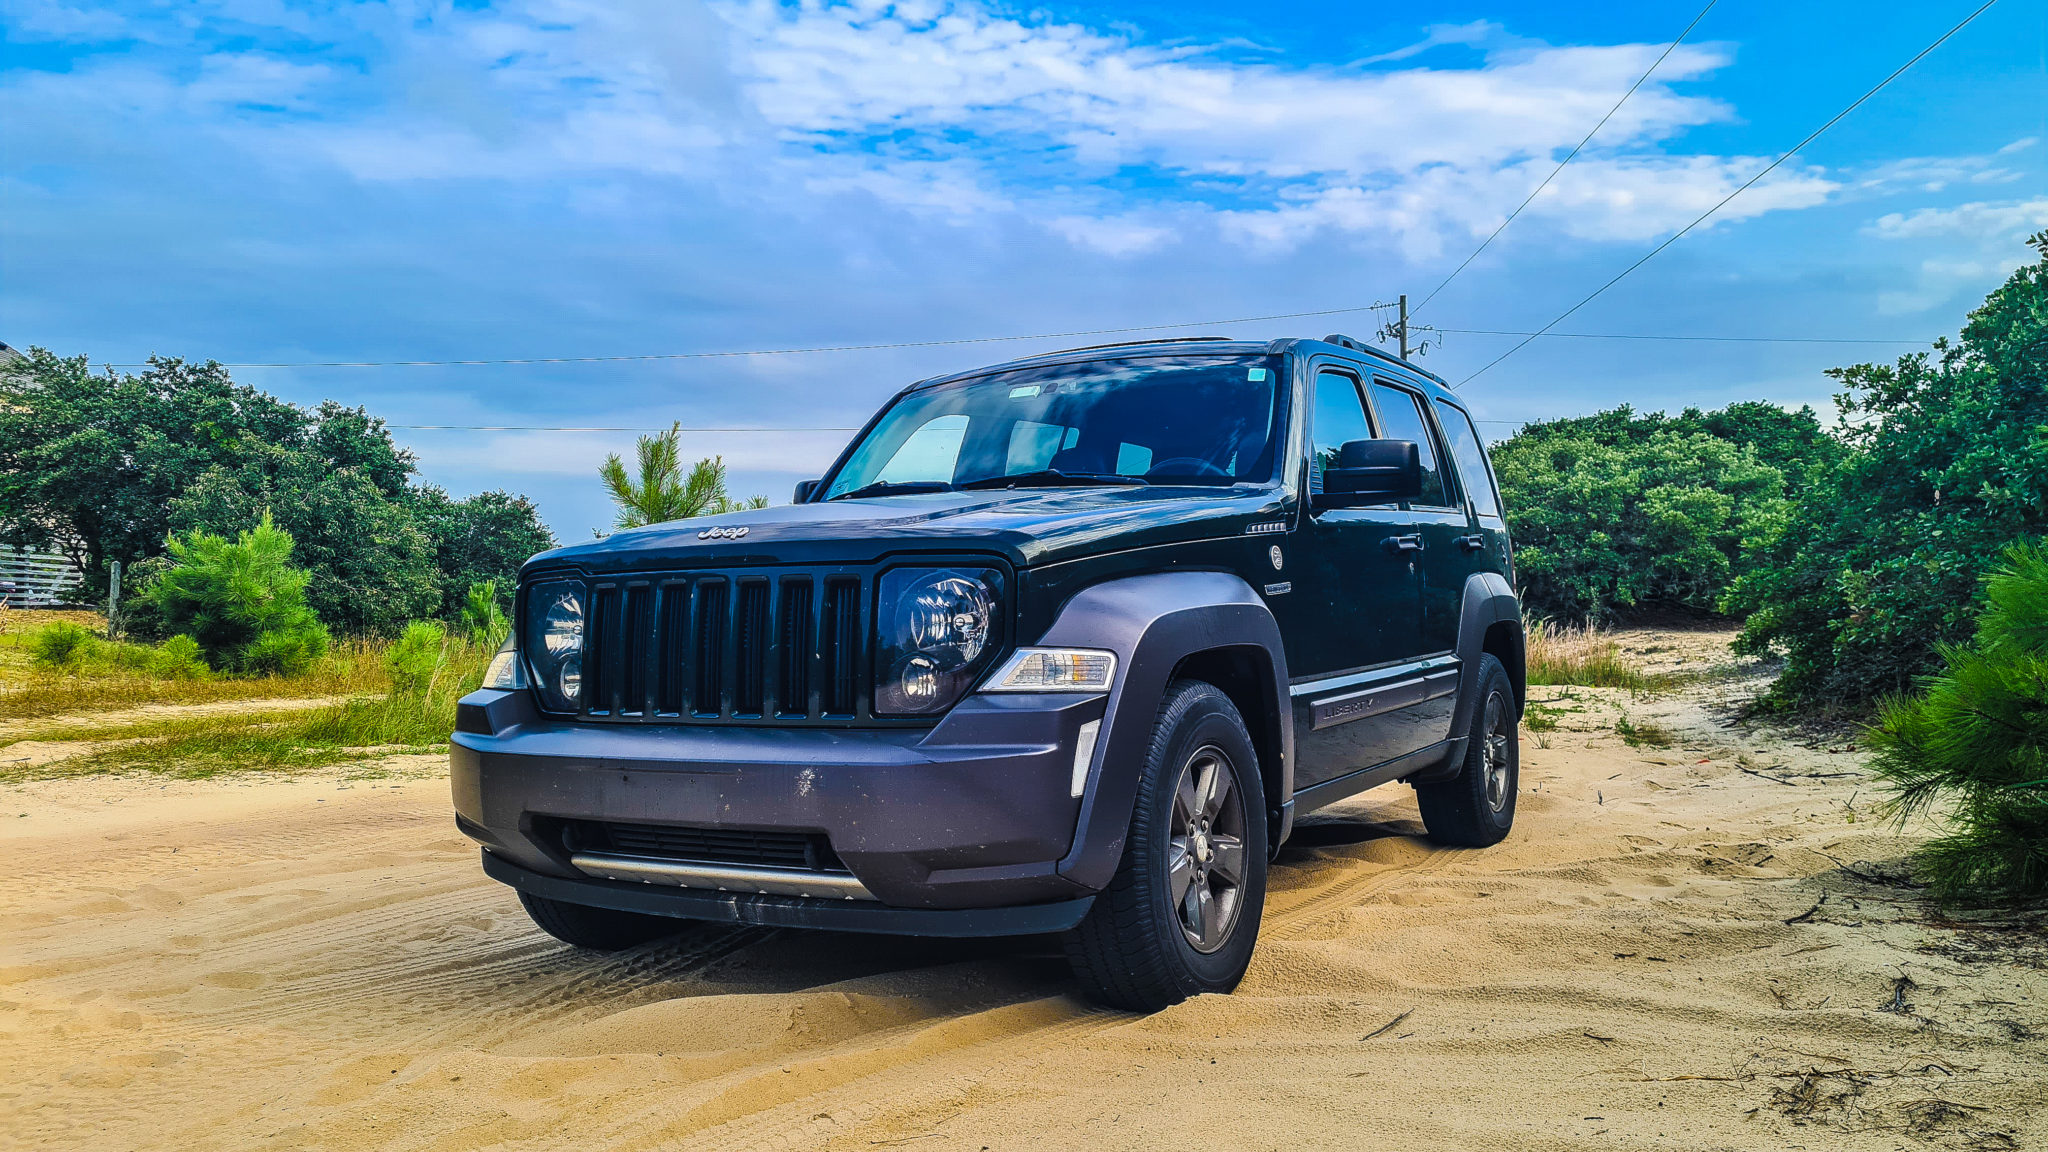 Product Review: Greenstuff Pads and Plain Discs Tested in Jeep Liberty Renegade